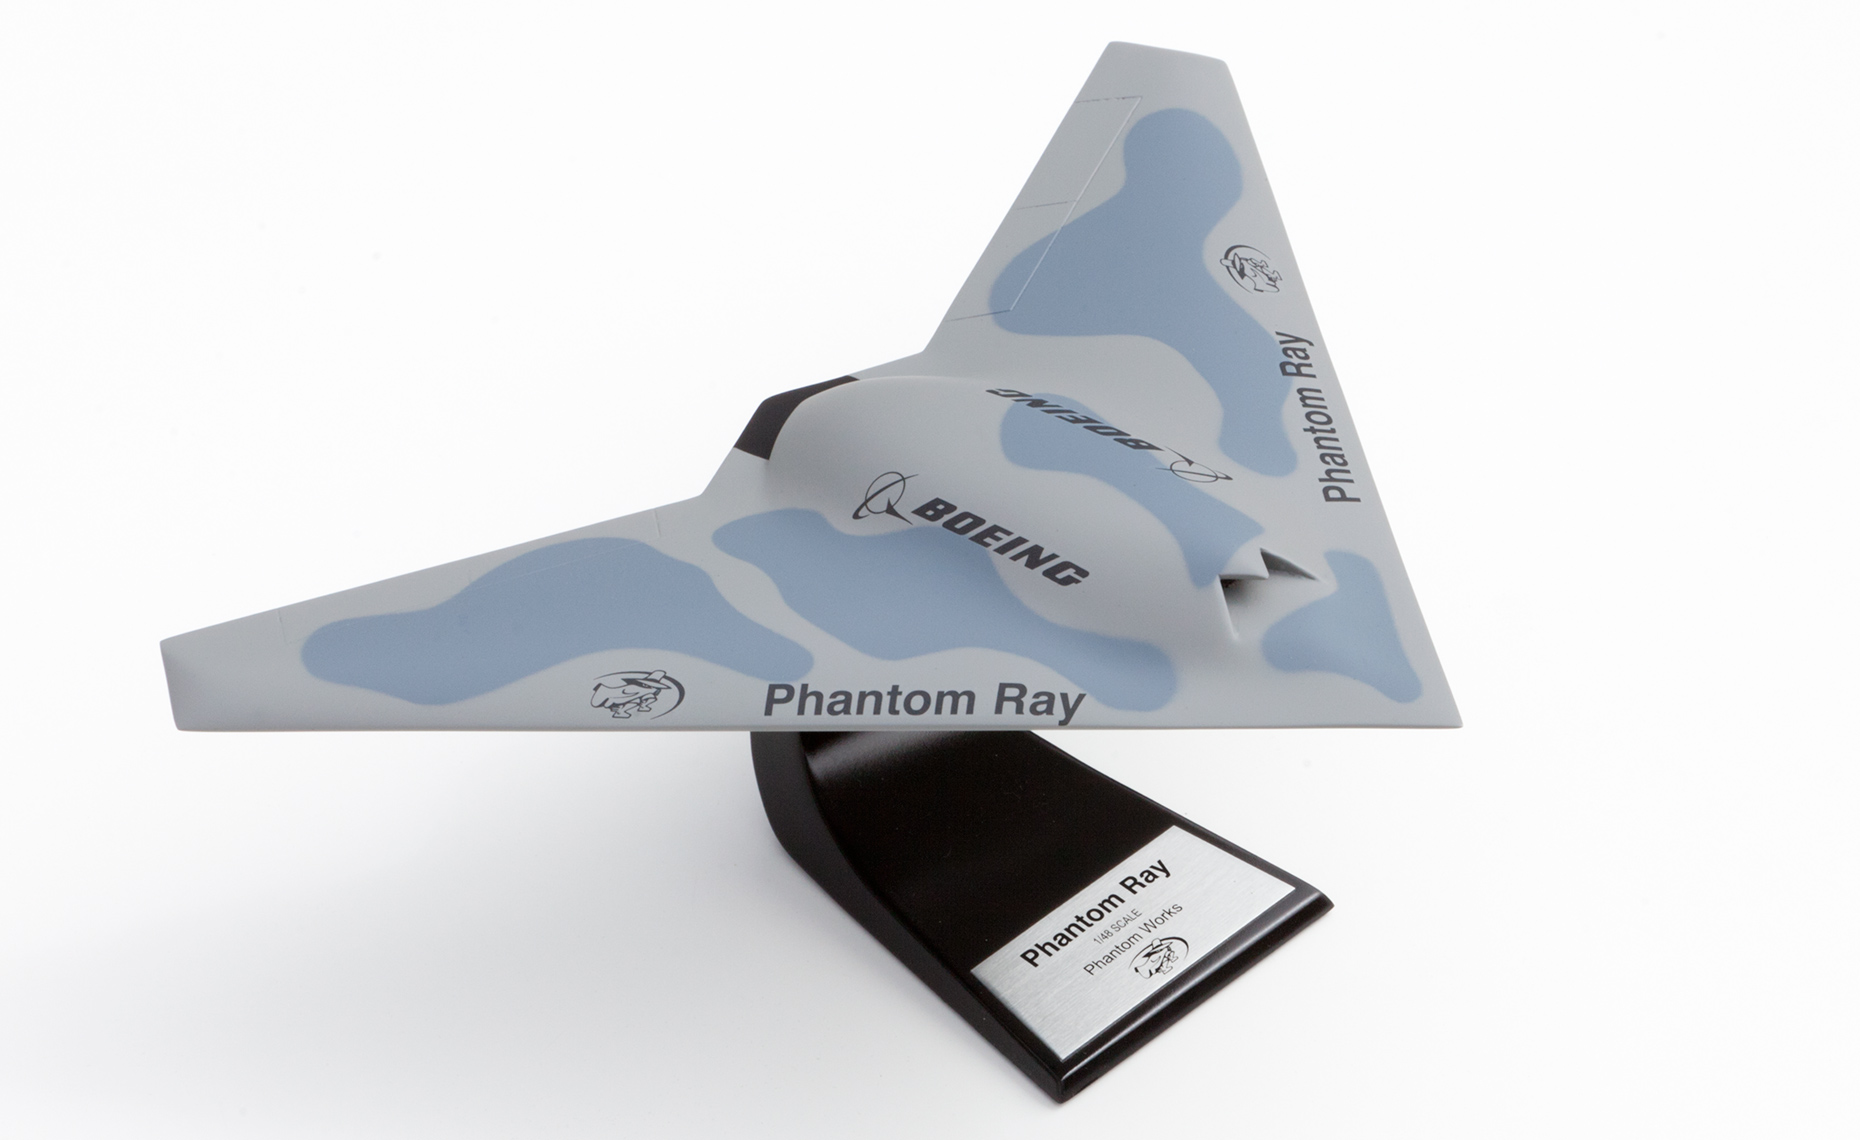 Boeing X-45C Phantom Ray model